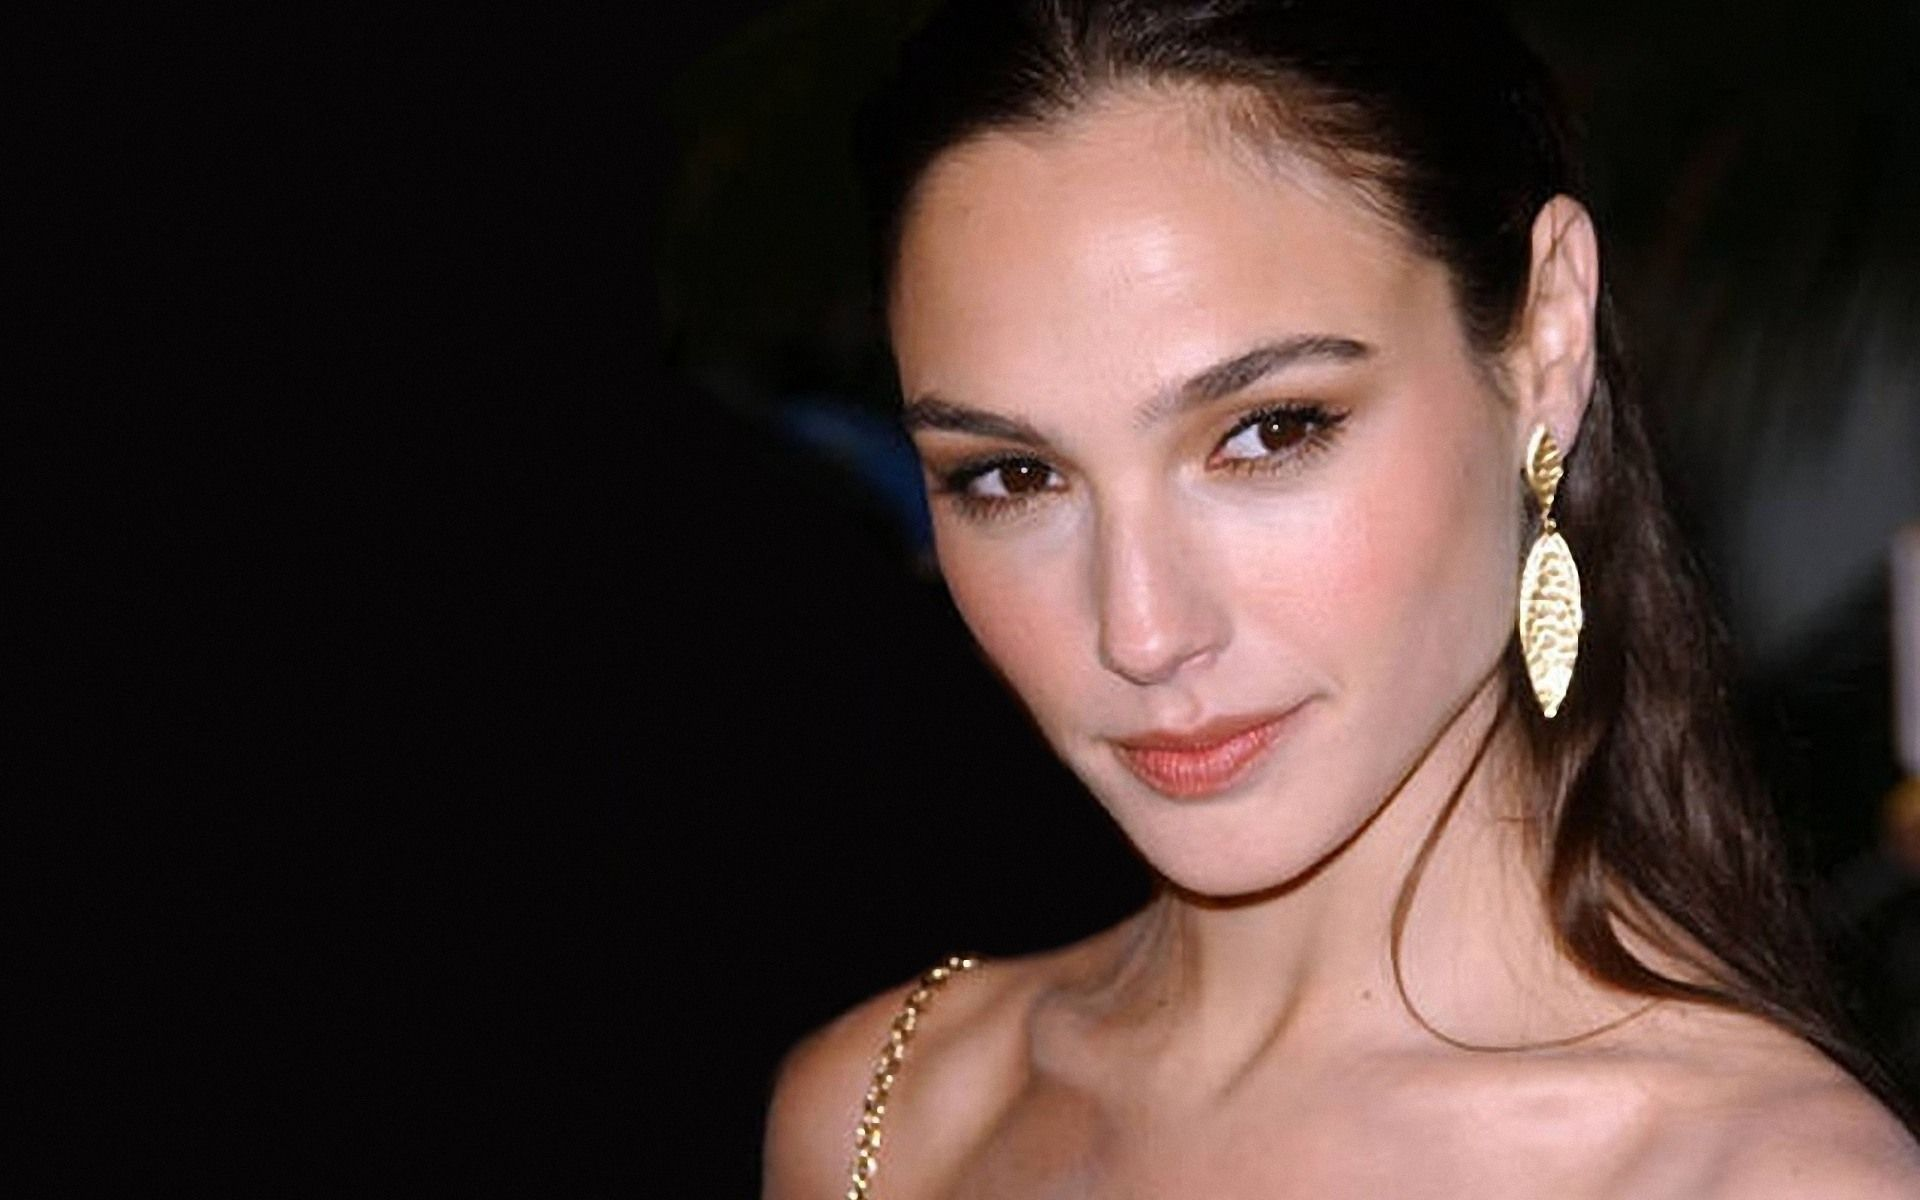 Download free gal gadot hd wallpapers for your cell phones tablets download free gal gadot hd wallpapers for your cell phones tablets desktop and laptops voltagebd Images